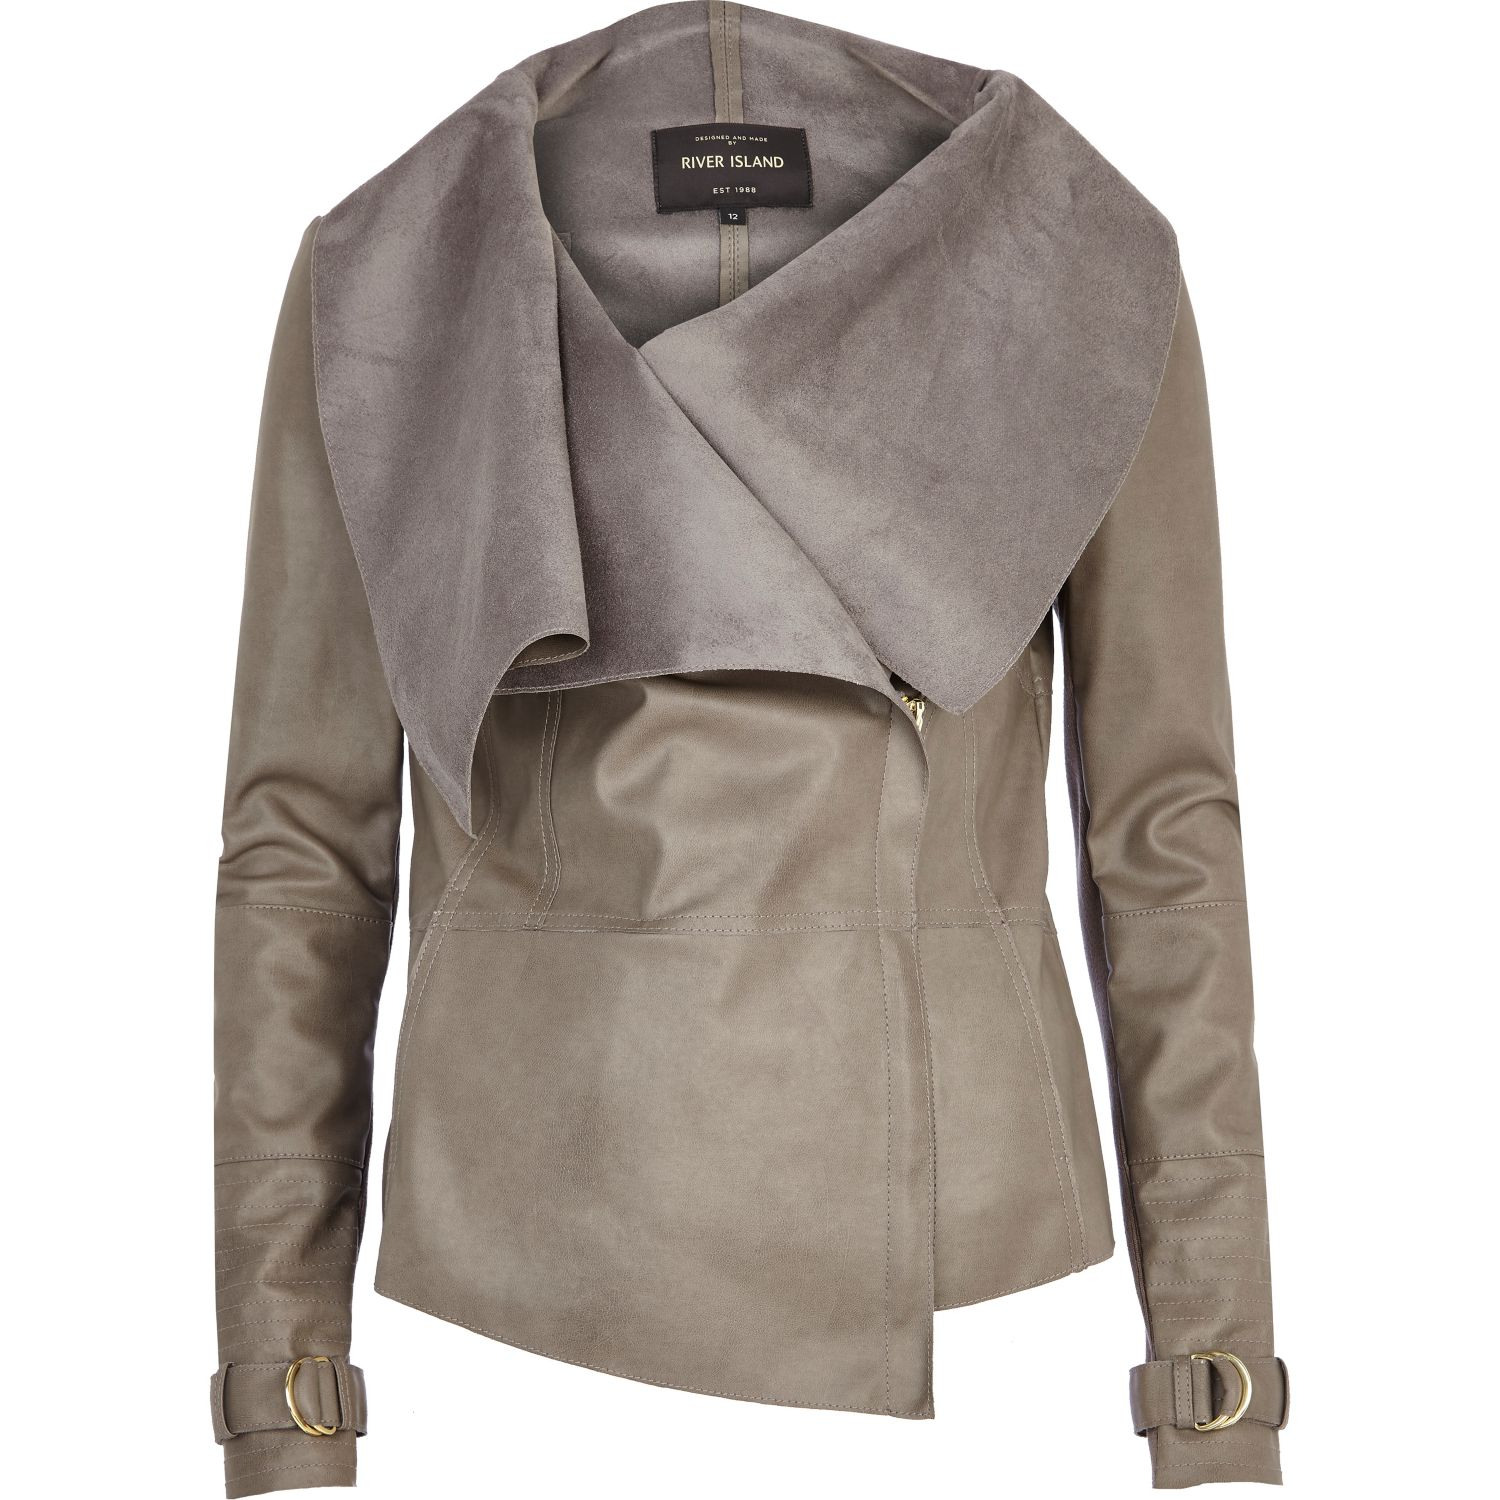 New Look Women's Waterfall Jacket out of 5 stars 10 customer reviews. Price: £ - £ & Free Returns on some sizes and colours Select Size to see the return policy for the item New Look Women's Bailey Waterfall Jacket out of 5 stars £ - £/5.